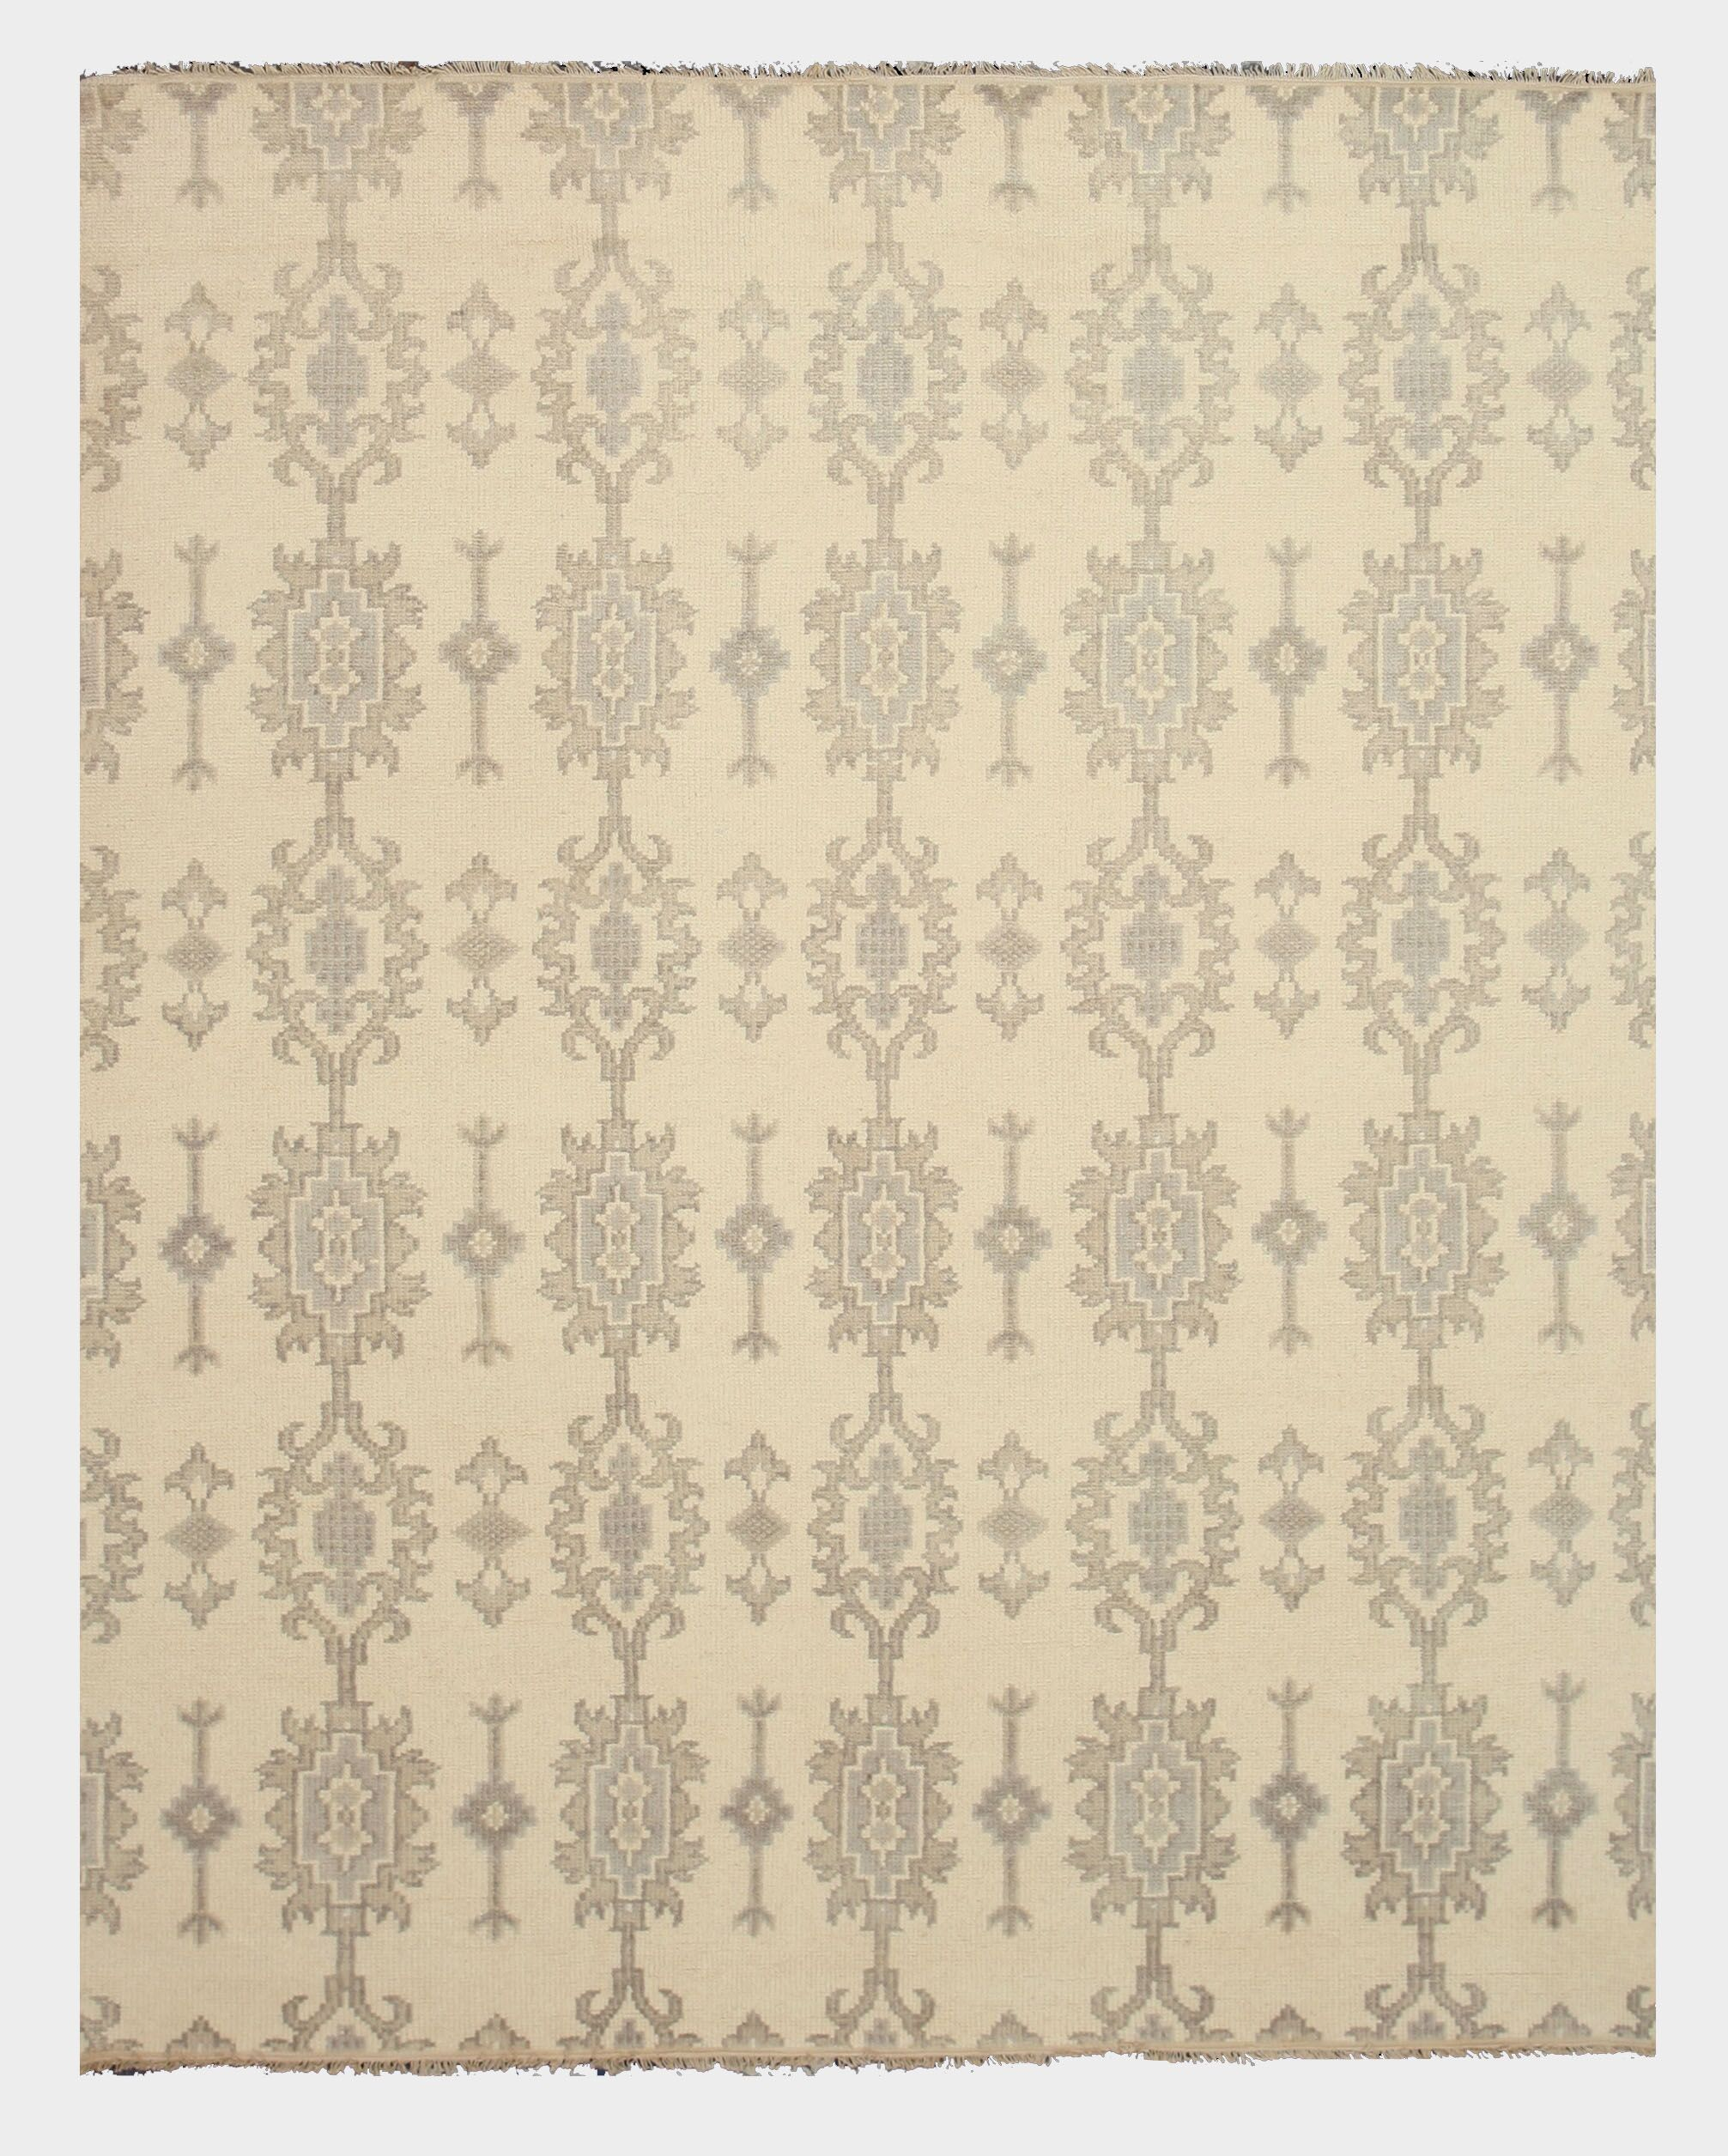 Pakaur Hand-Knotted Beige/Gray Area Rug Rug Size: Rectangle 8' x 10'